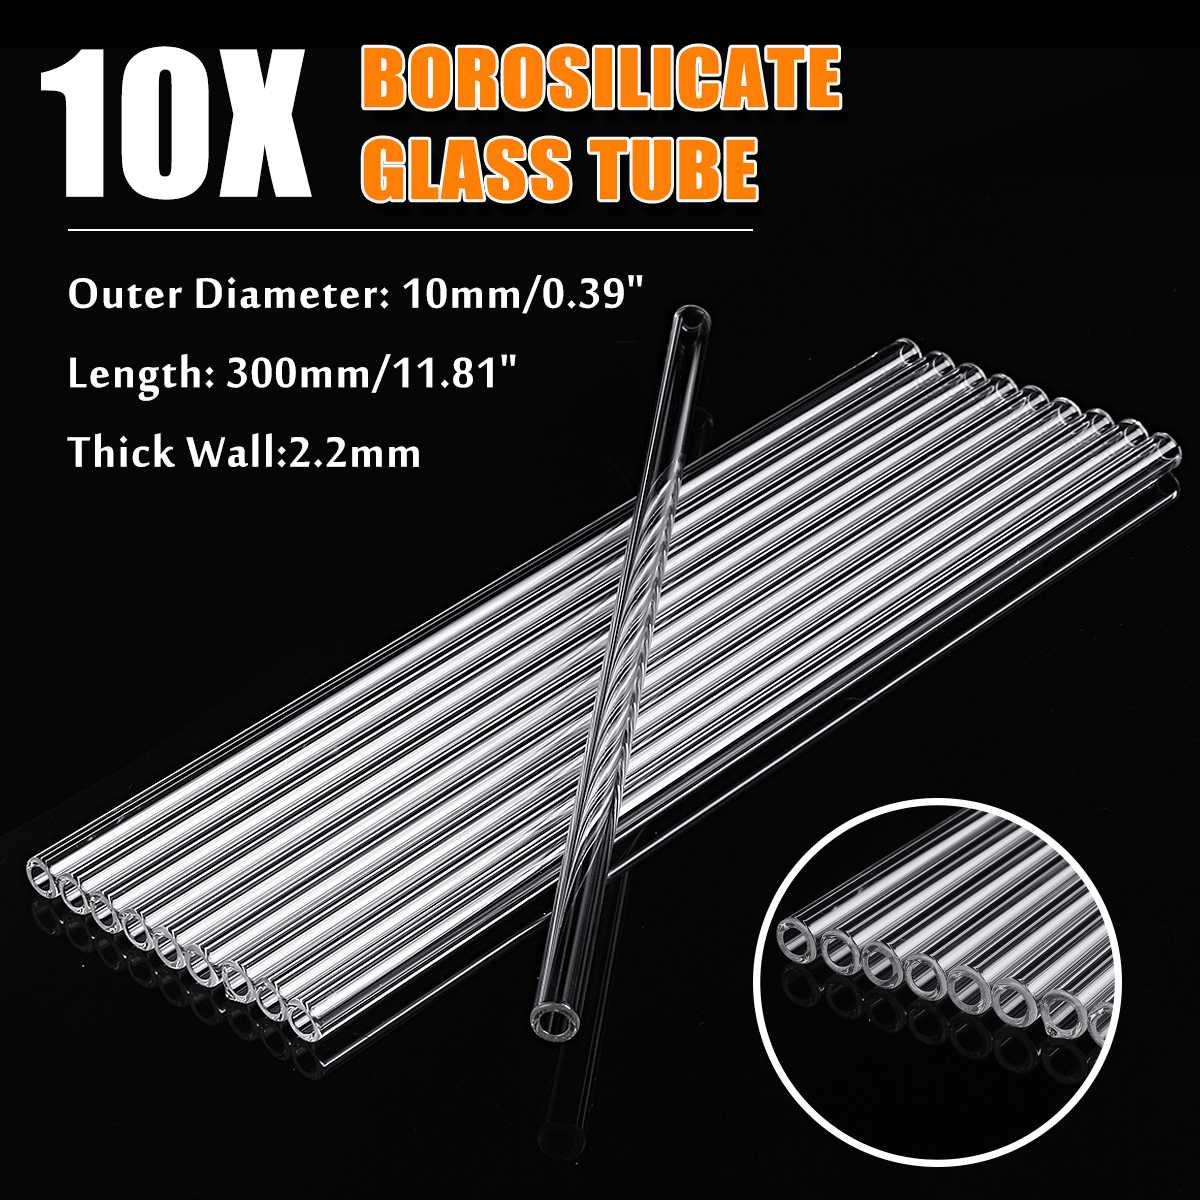 10Pcs 300mm OD 10mm 2.2mm Thick Wall Borosilicate Glass Blowing Tube Lab Tubing For School Lab Chemical Experiment Glass Blowing